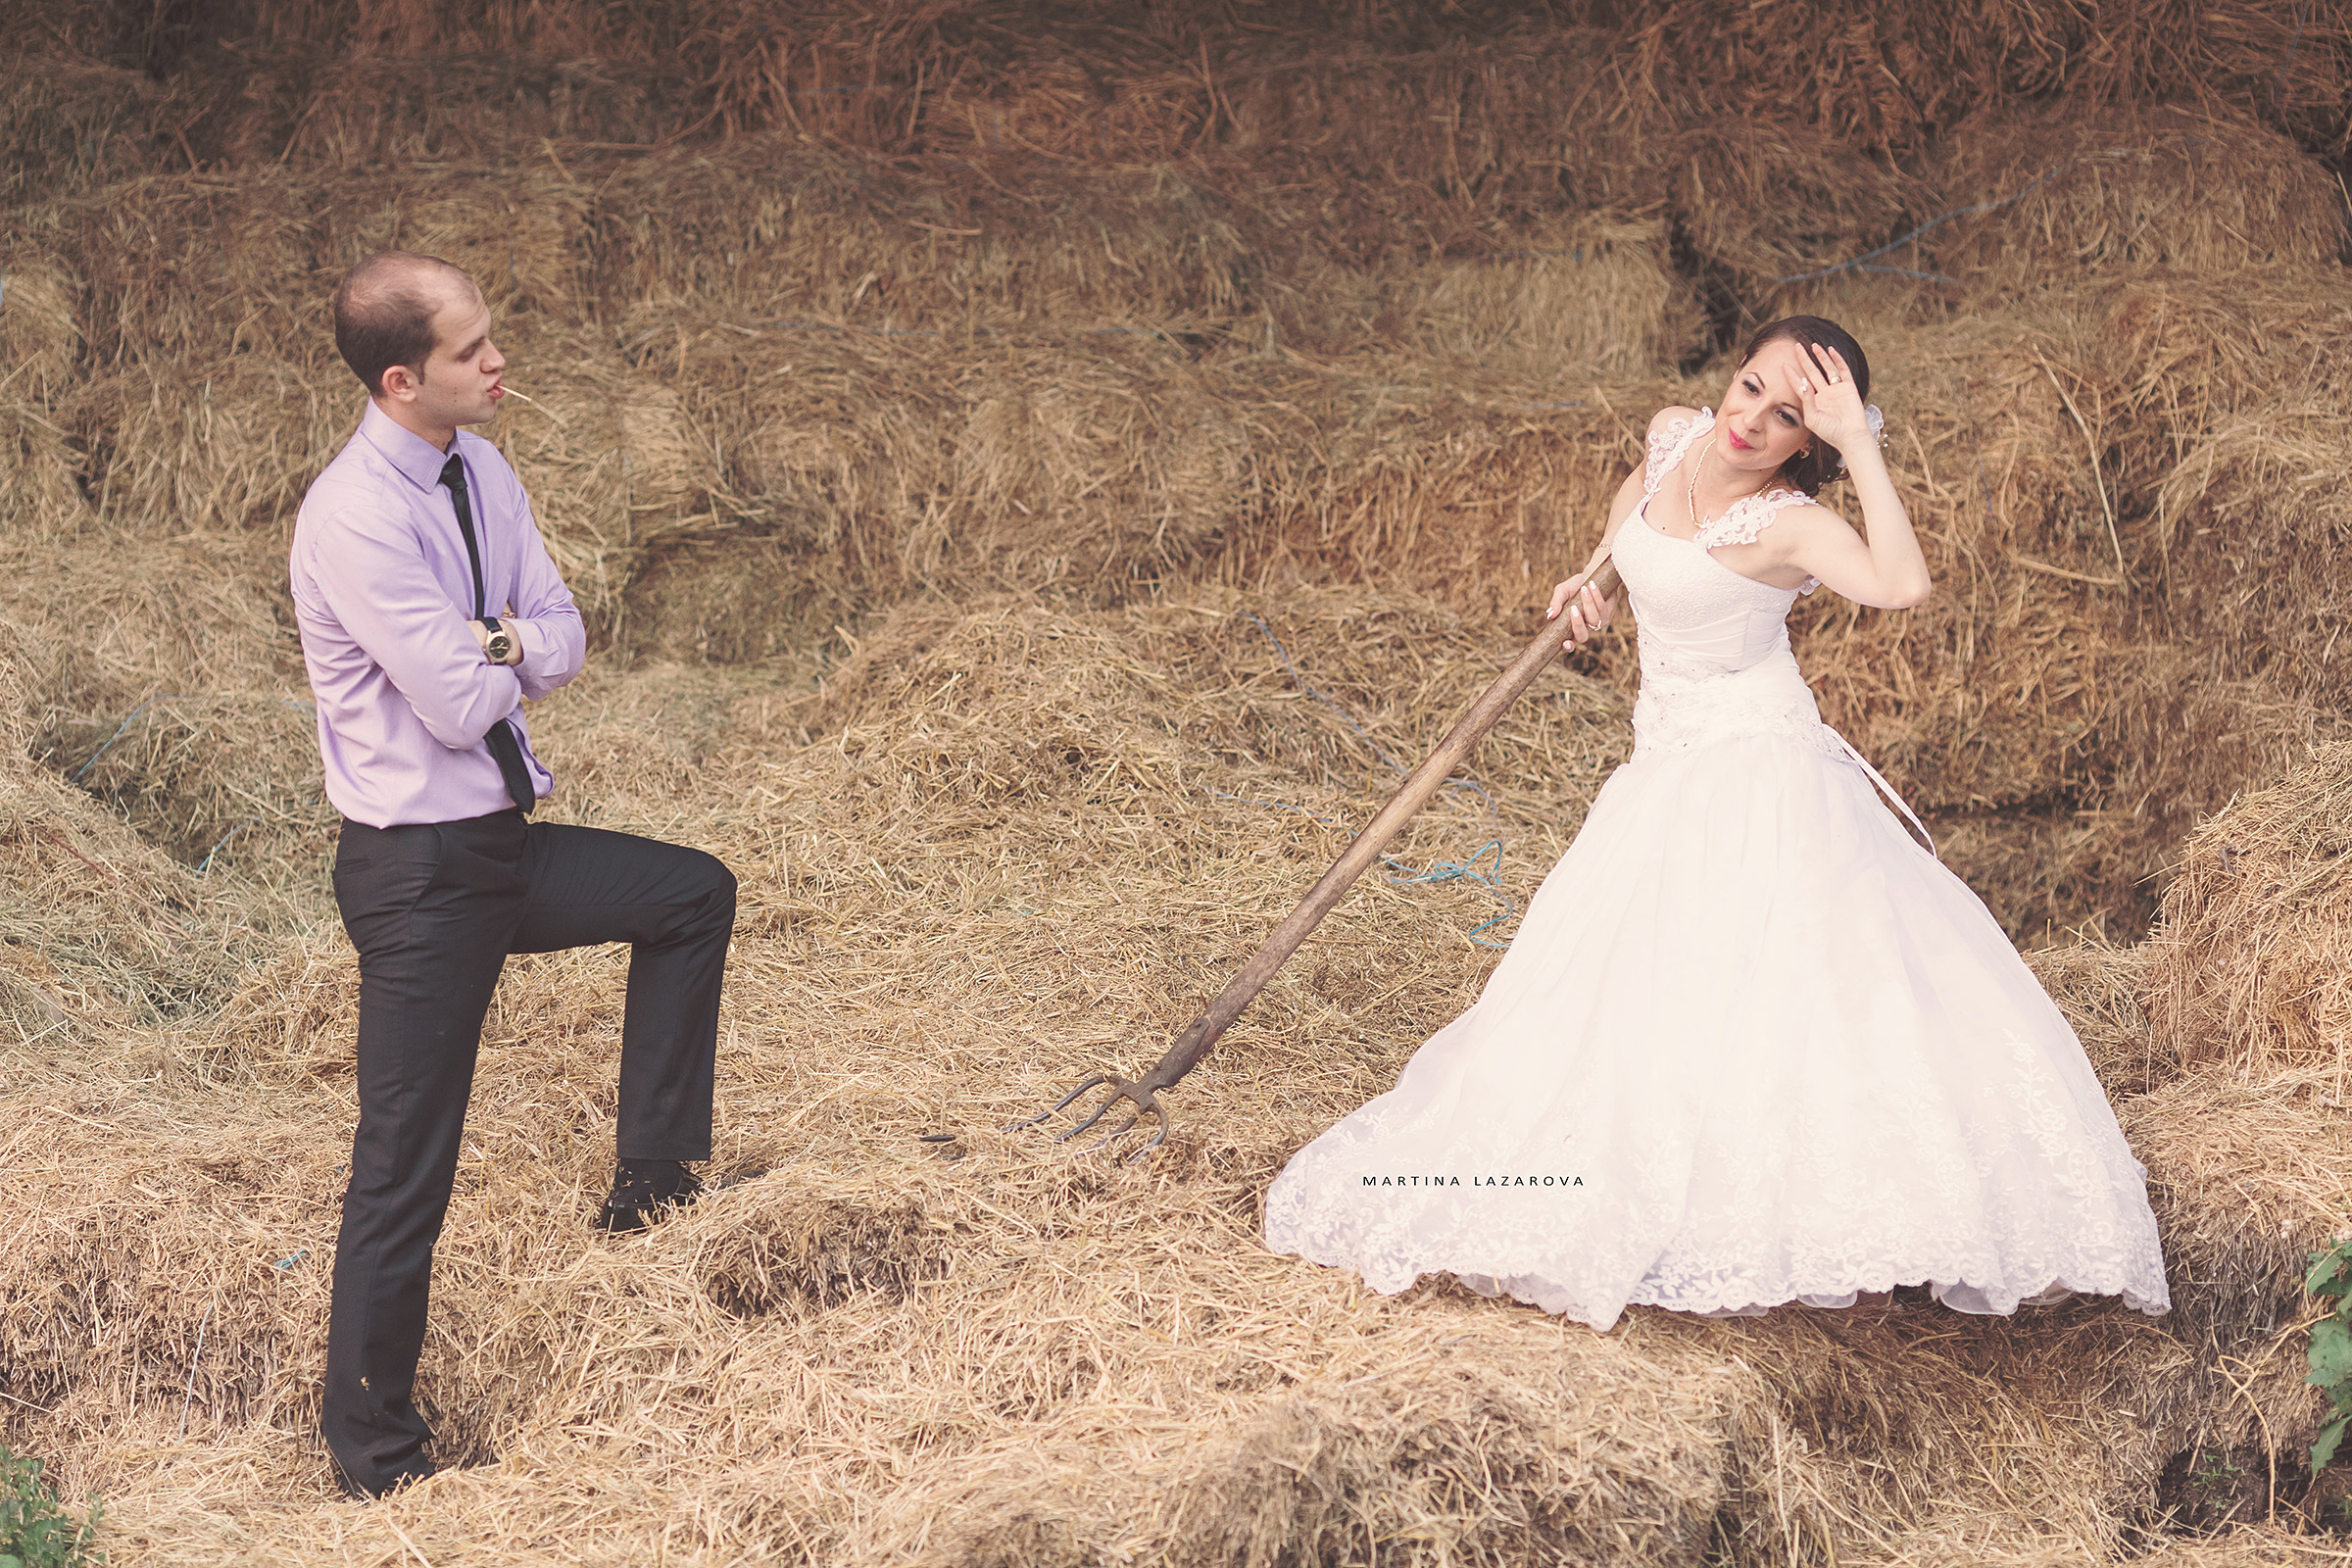 Wedding-PhotoShoot-A&S-106